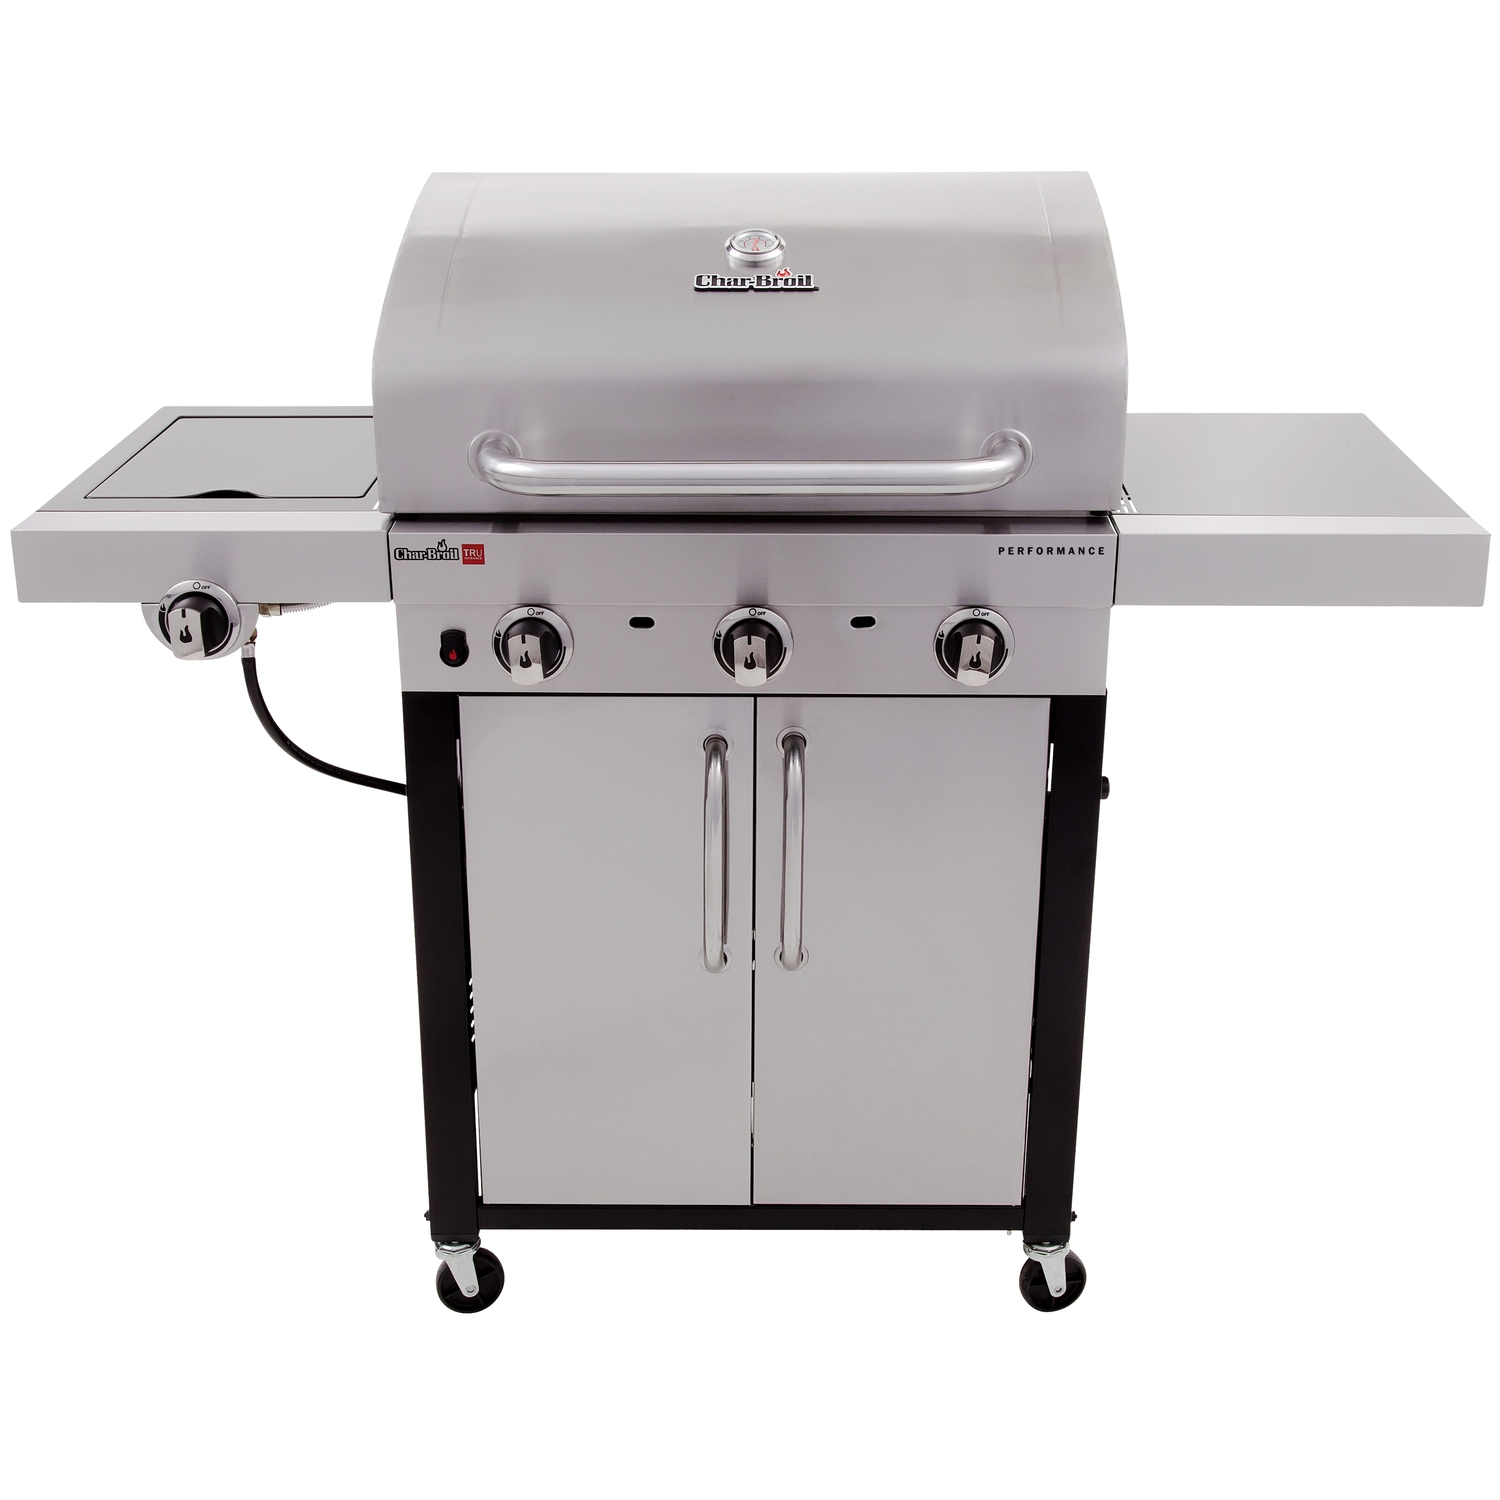 Char-Broil  Performance Series 3 Burner  3 burners Propane  Stainless Steel  Grill  24000 BTU